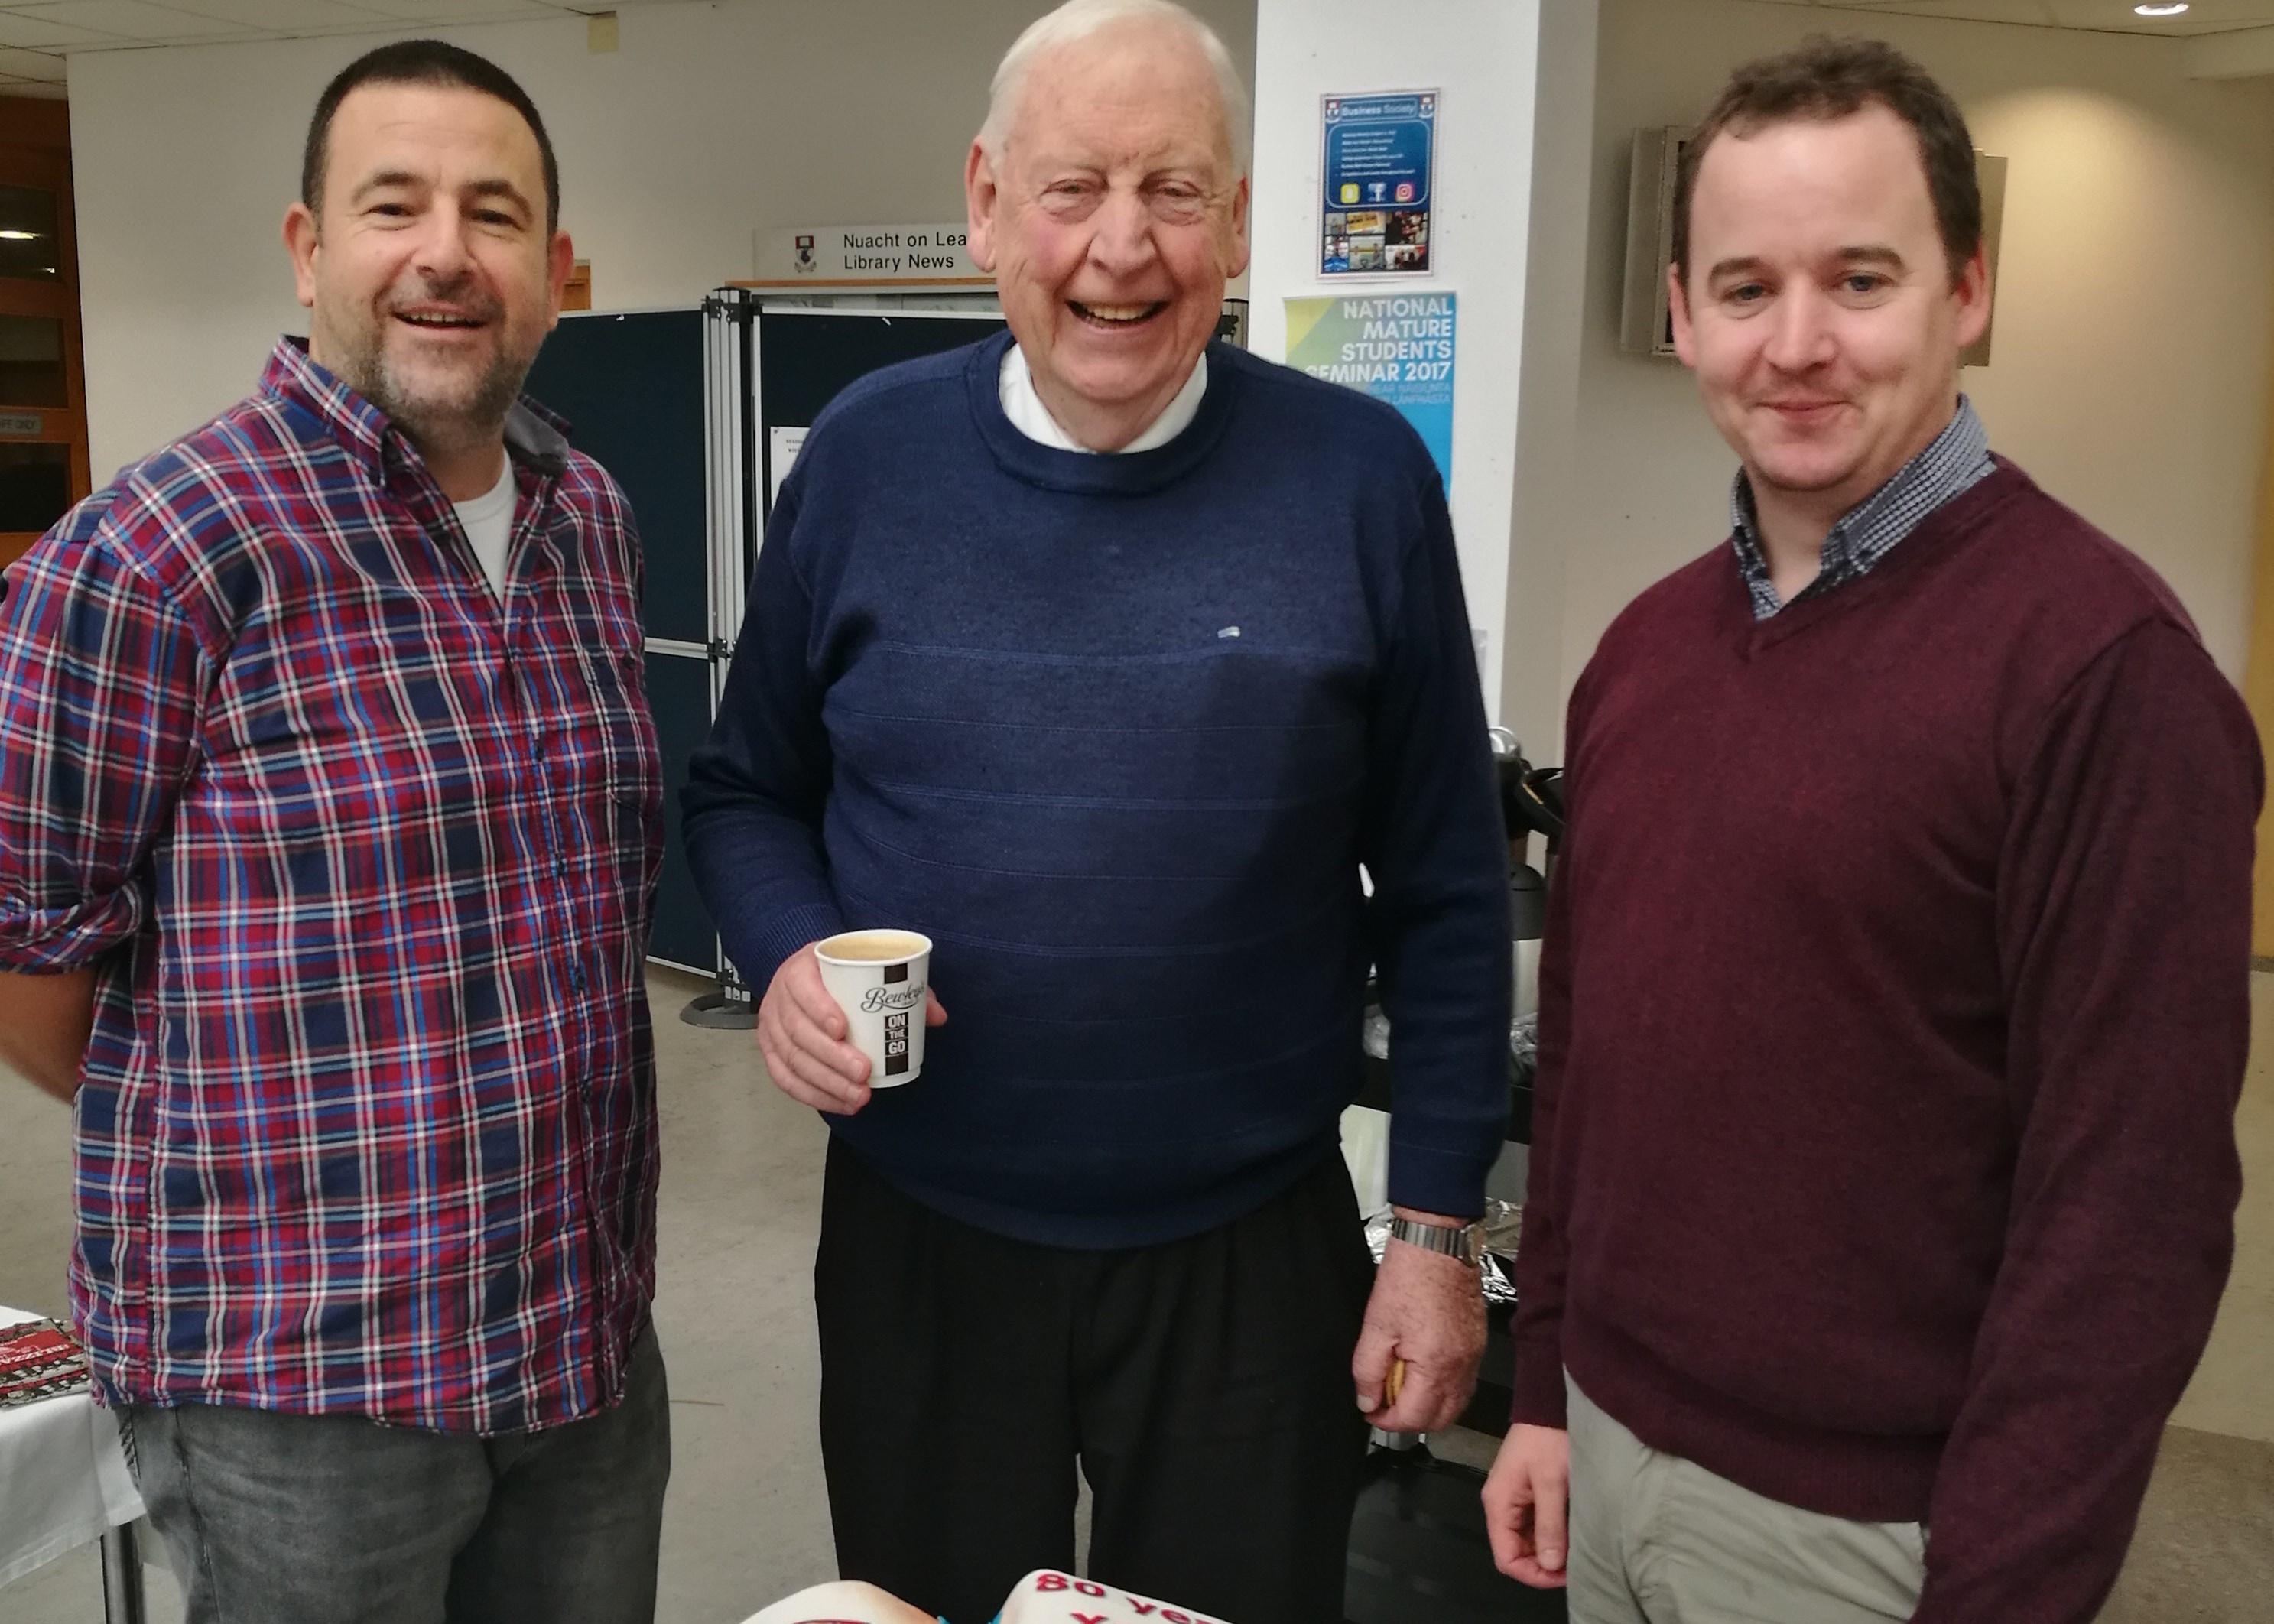 Pictured far left is Mature student Steve Daly at a birthday celebration in 2017 for WIT's eldest student Tom Boyle (80) and lecturer Seamus Dillon